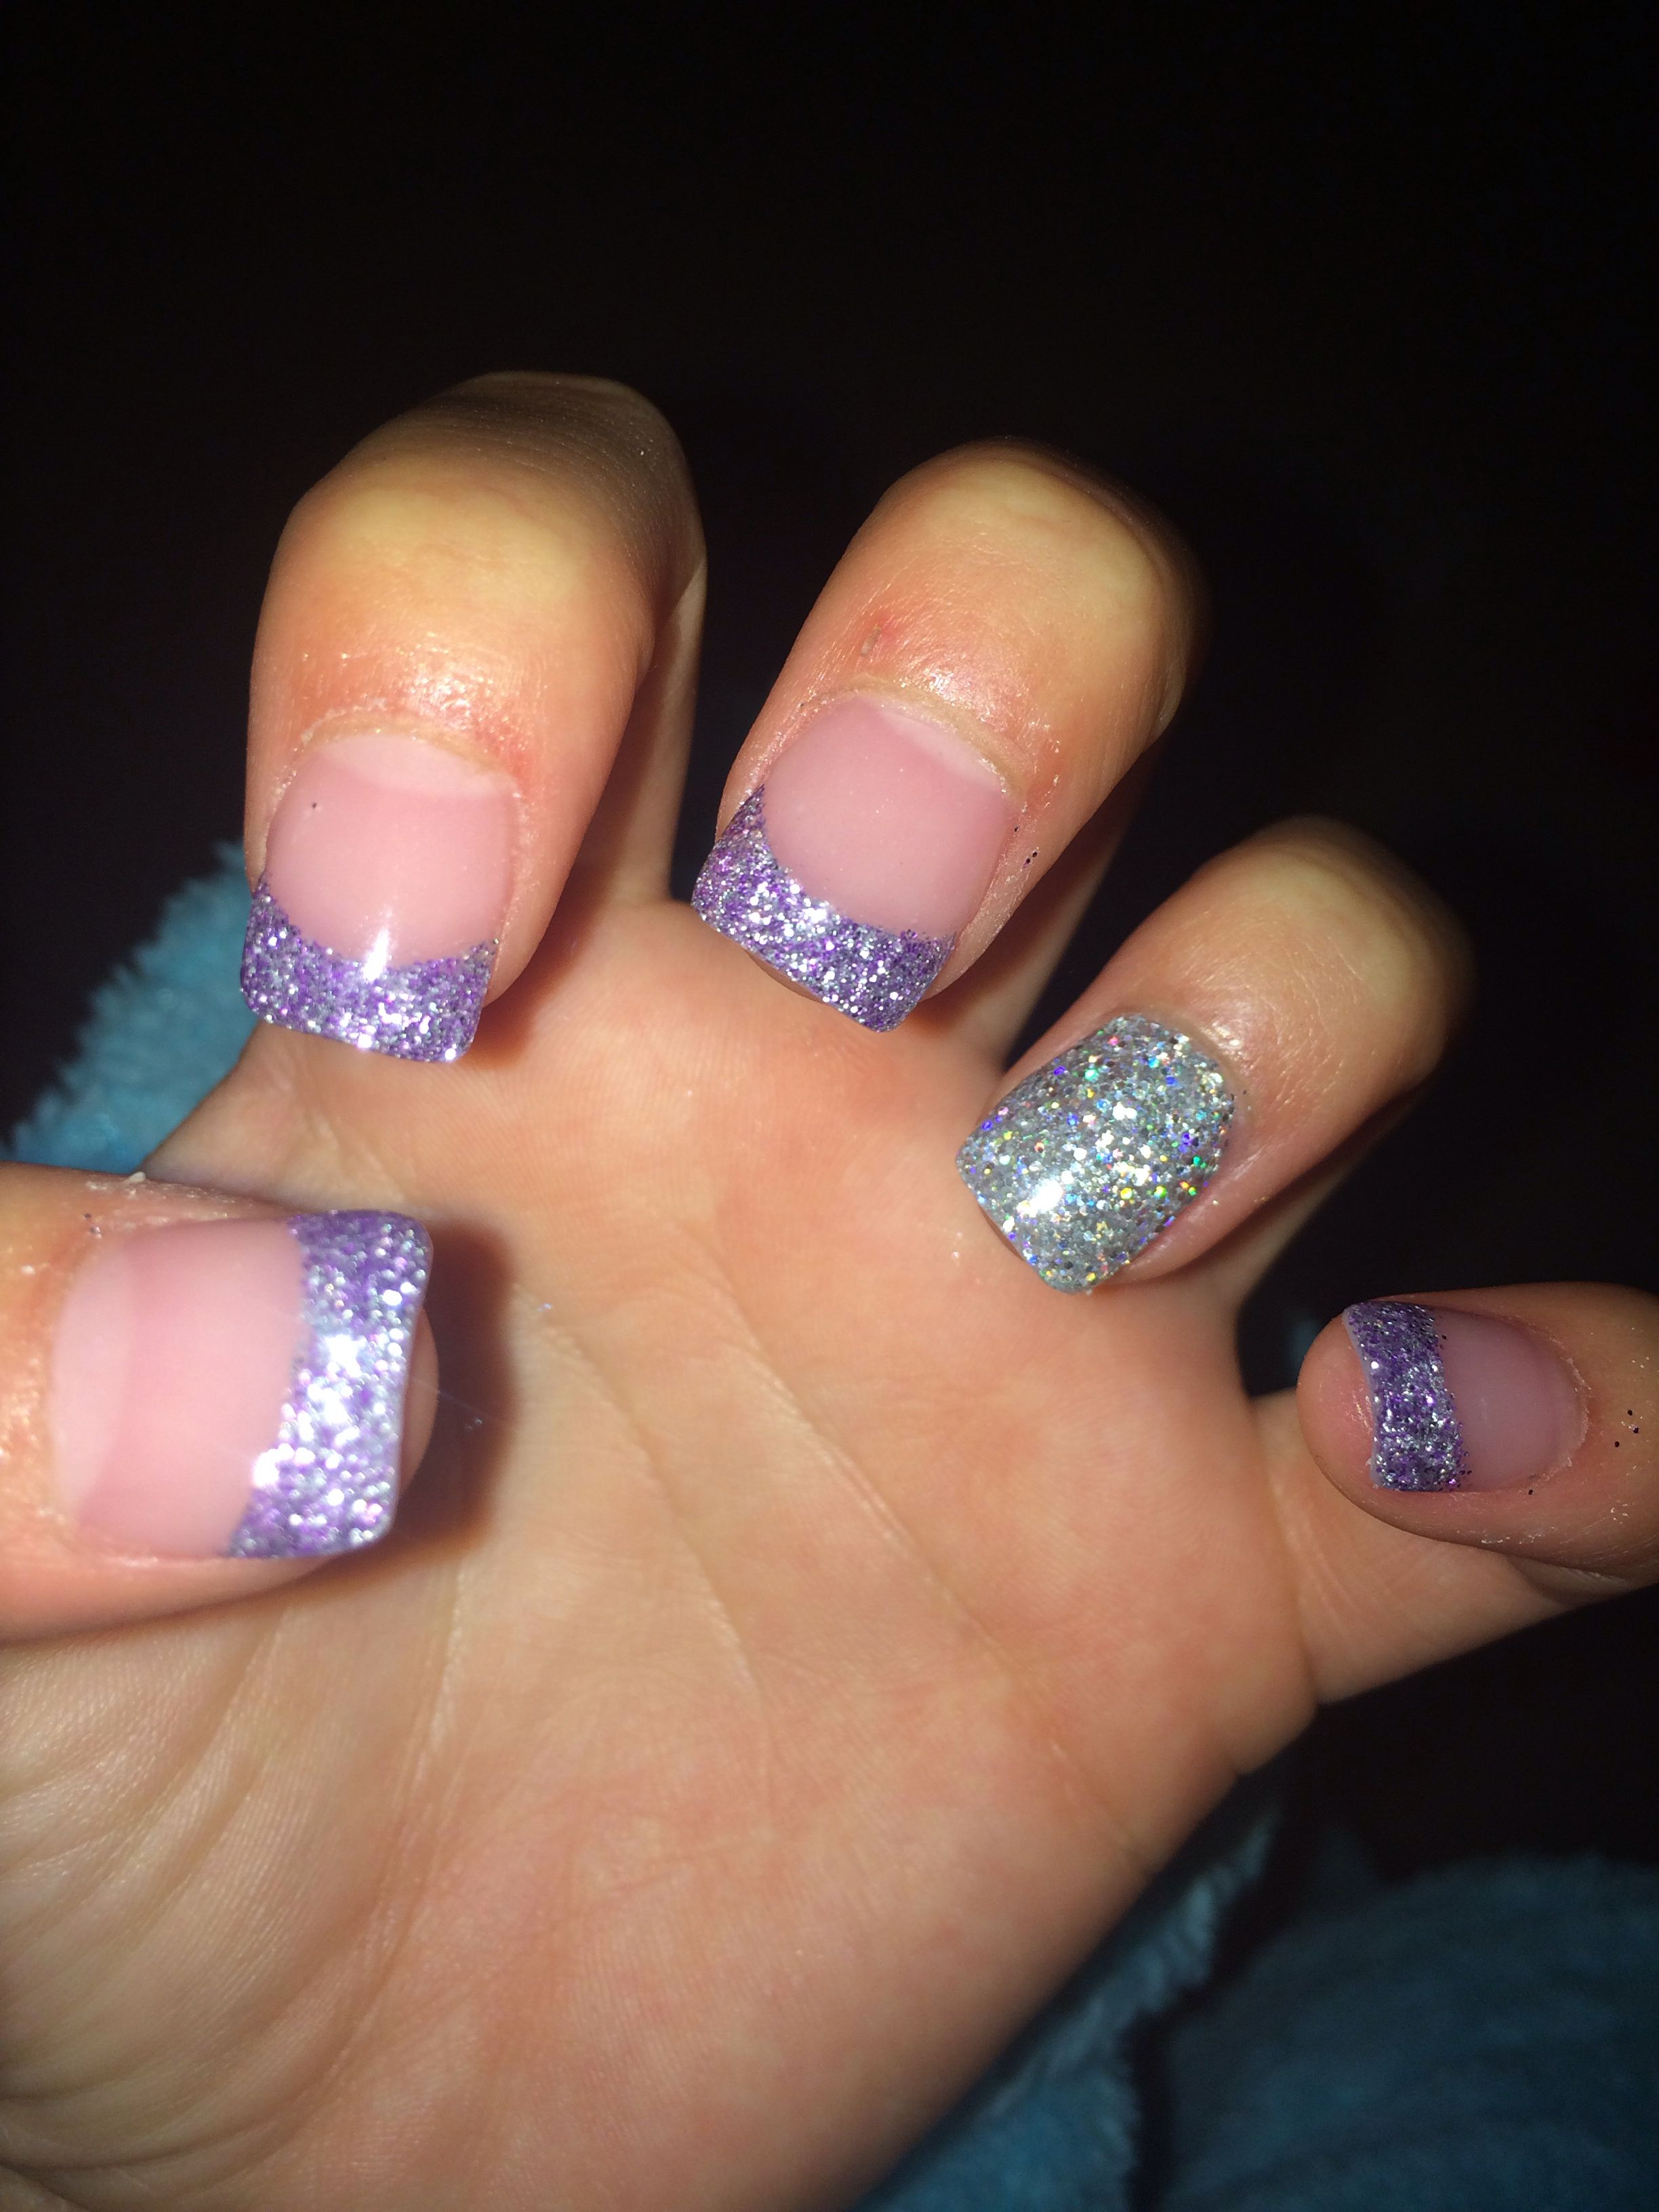 Purple And Silver Glitter Acrylic Nails Awesome Choice For Prom Or Any Fun Party